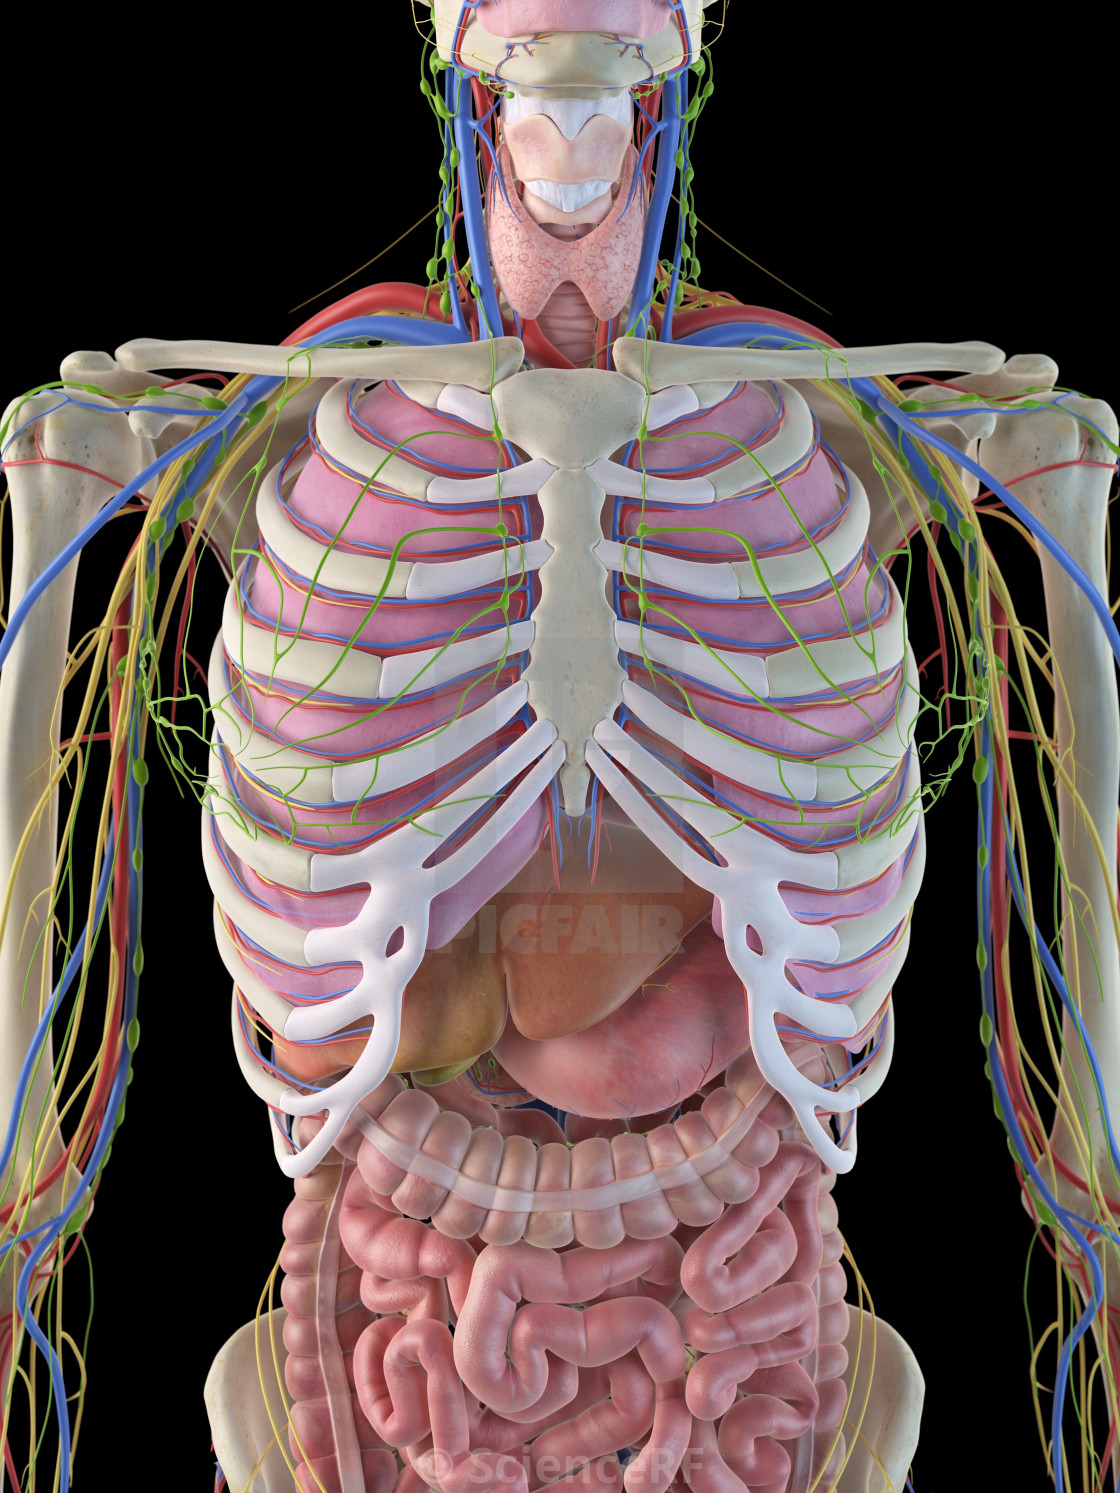 Human ribcage and organs, artwork - License for £39.00 on Picfair